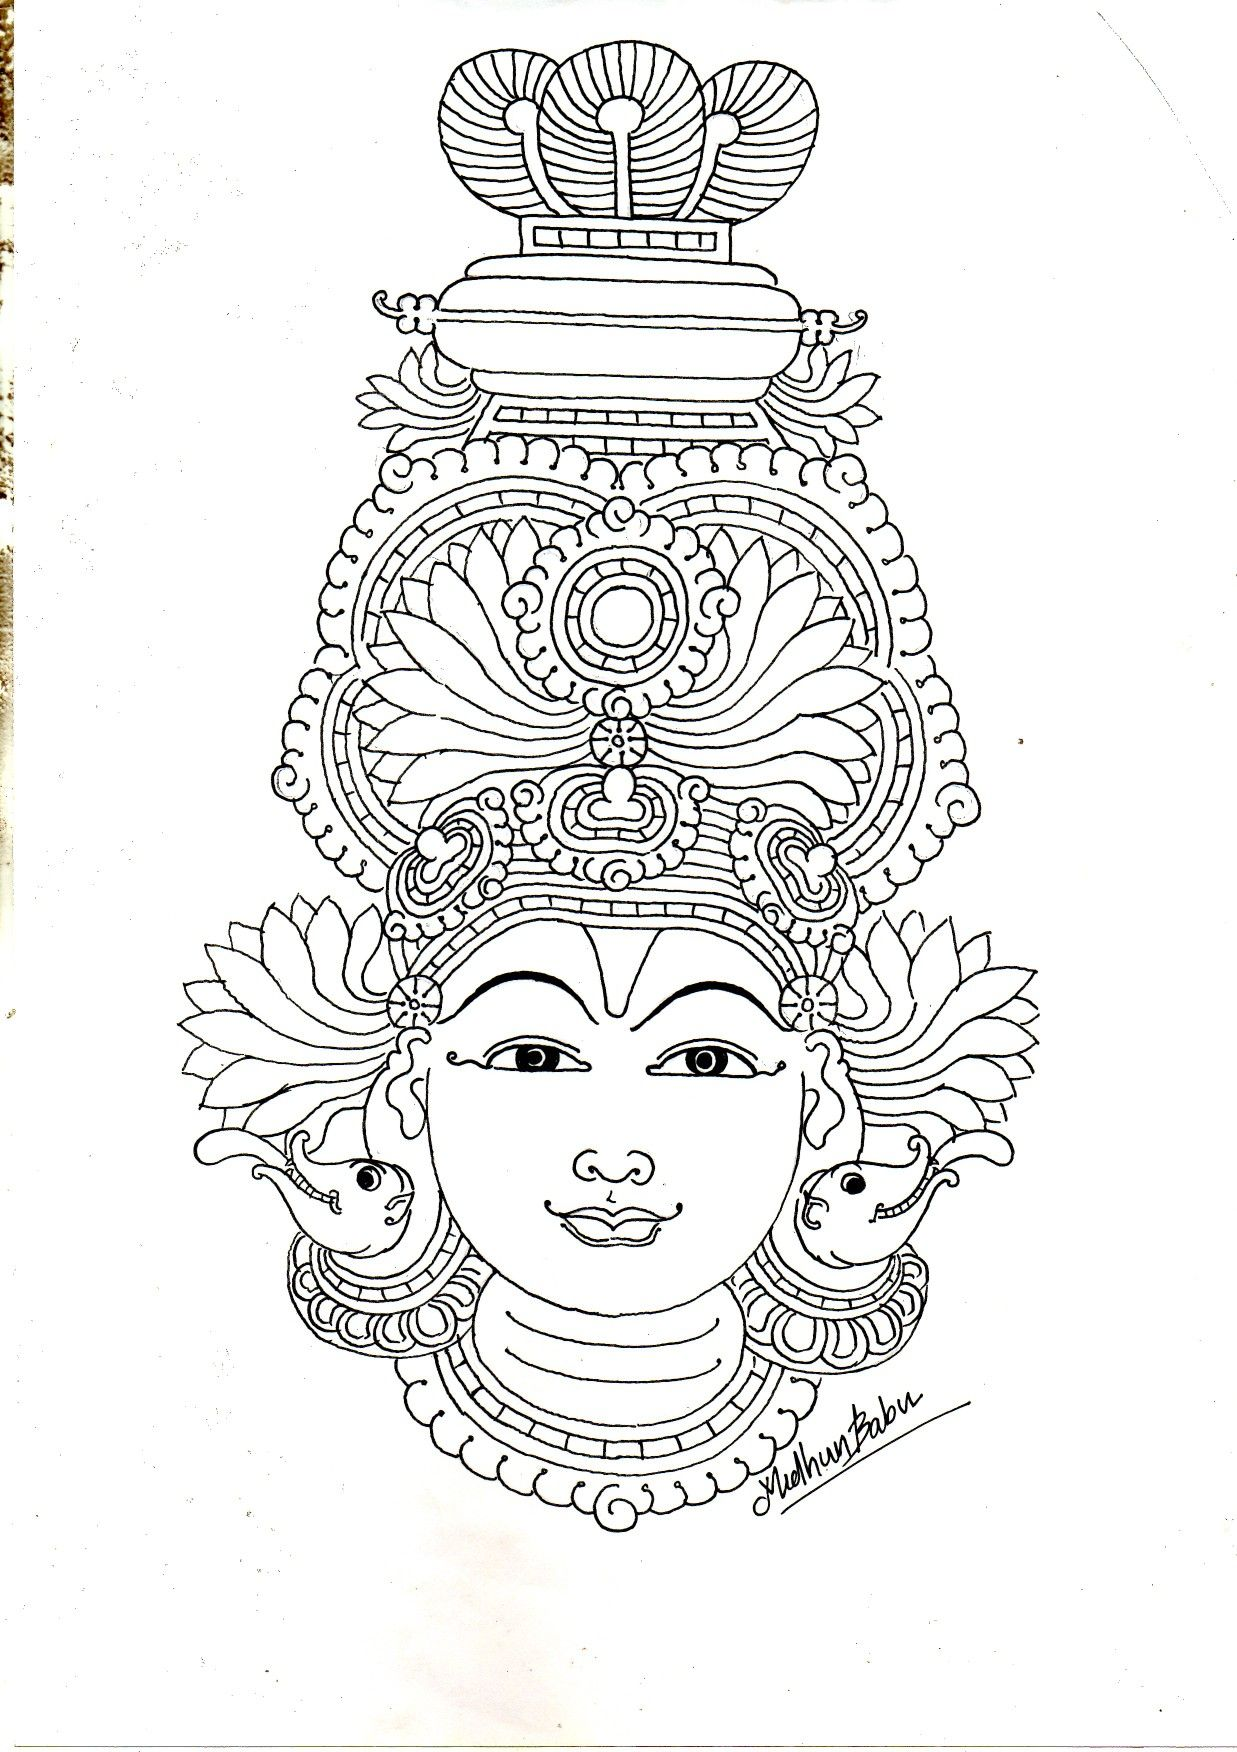 A very simple mural drawing keralamural art artist diy